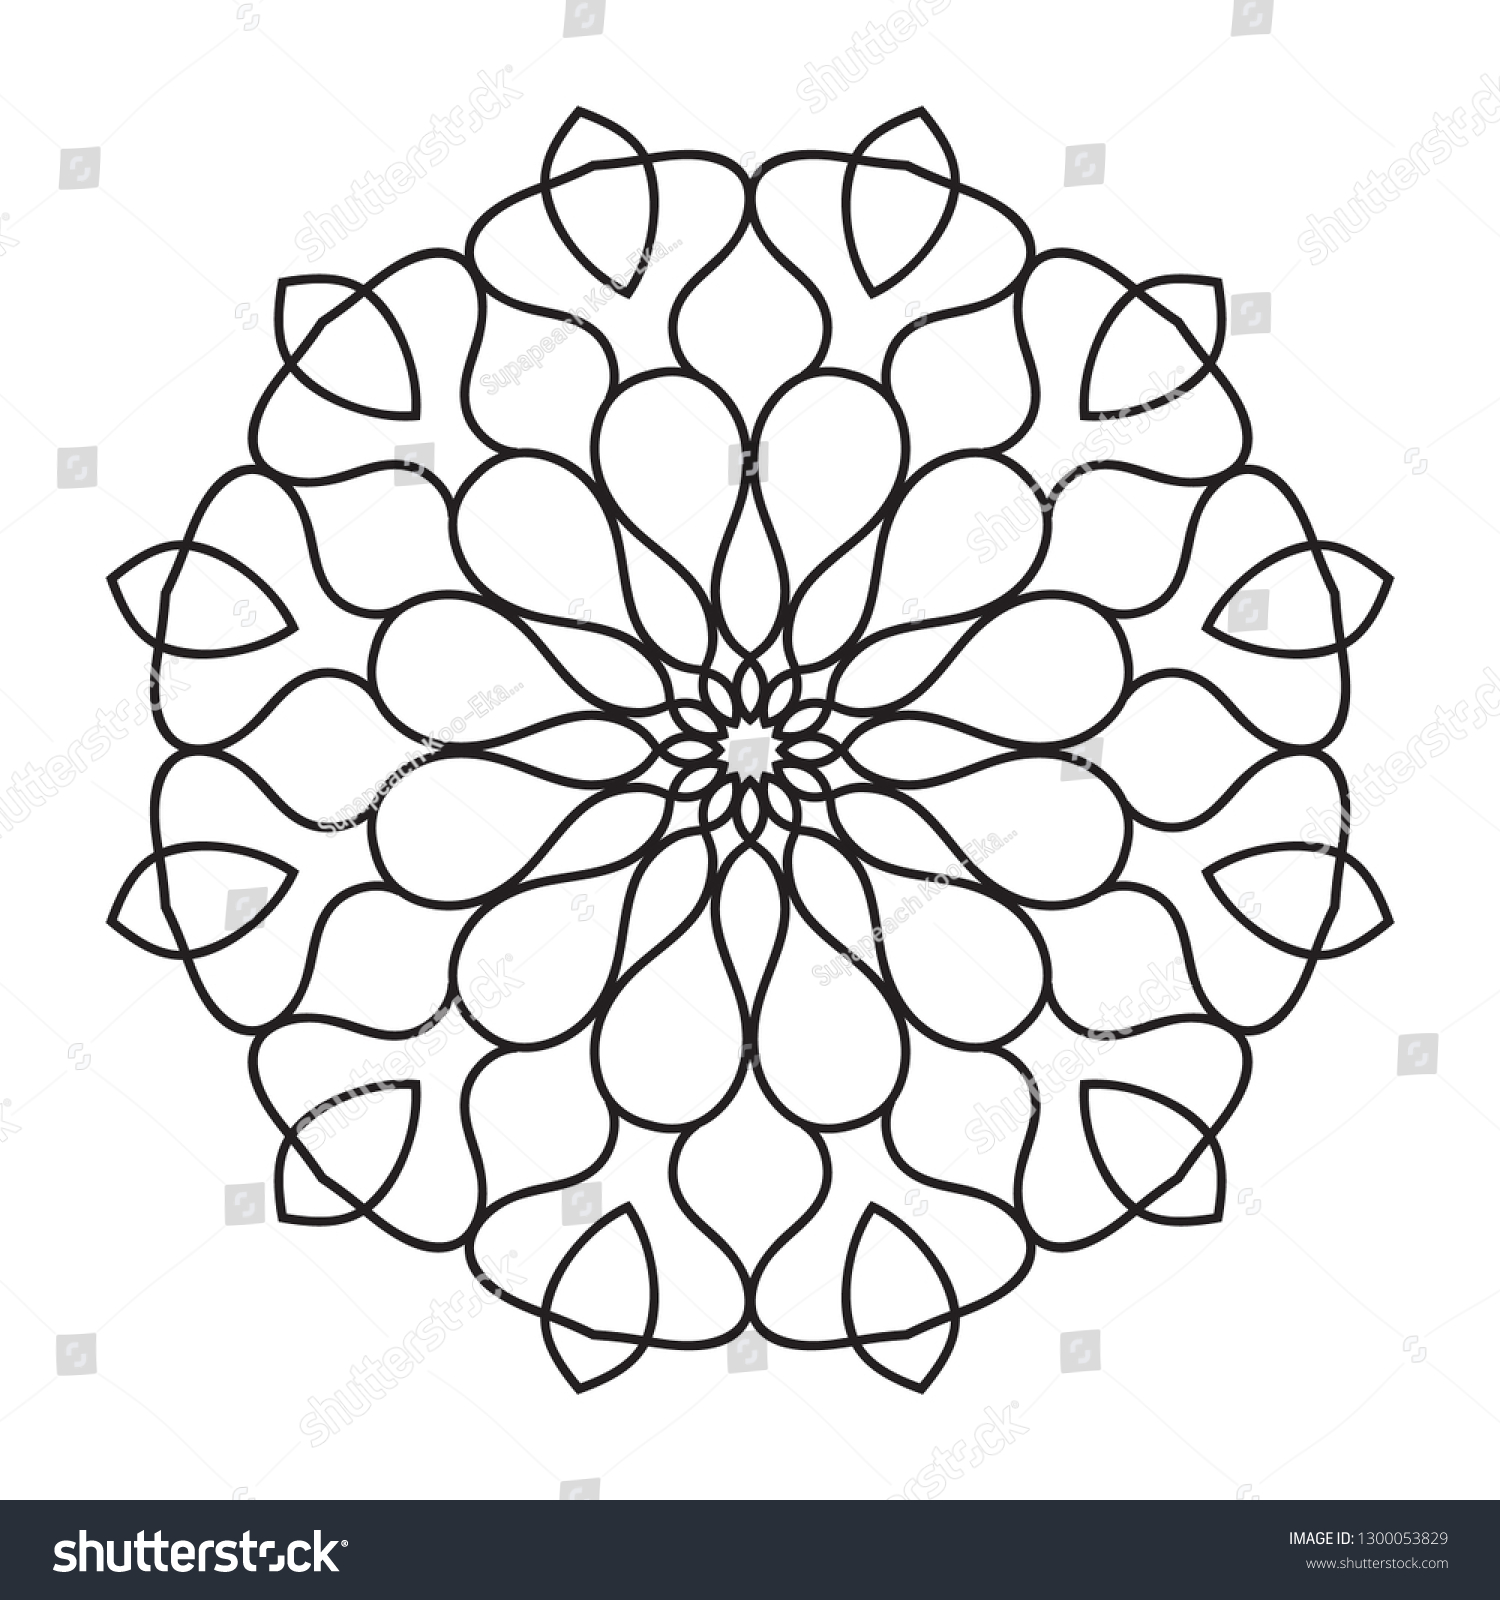 Mandala with Floral Pattern coloring page | Free Printable Coloring Pages | 1600x1500